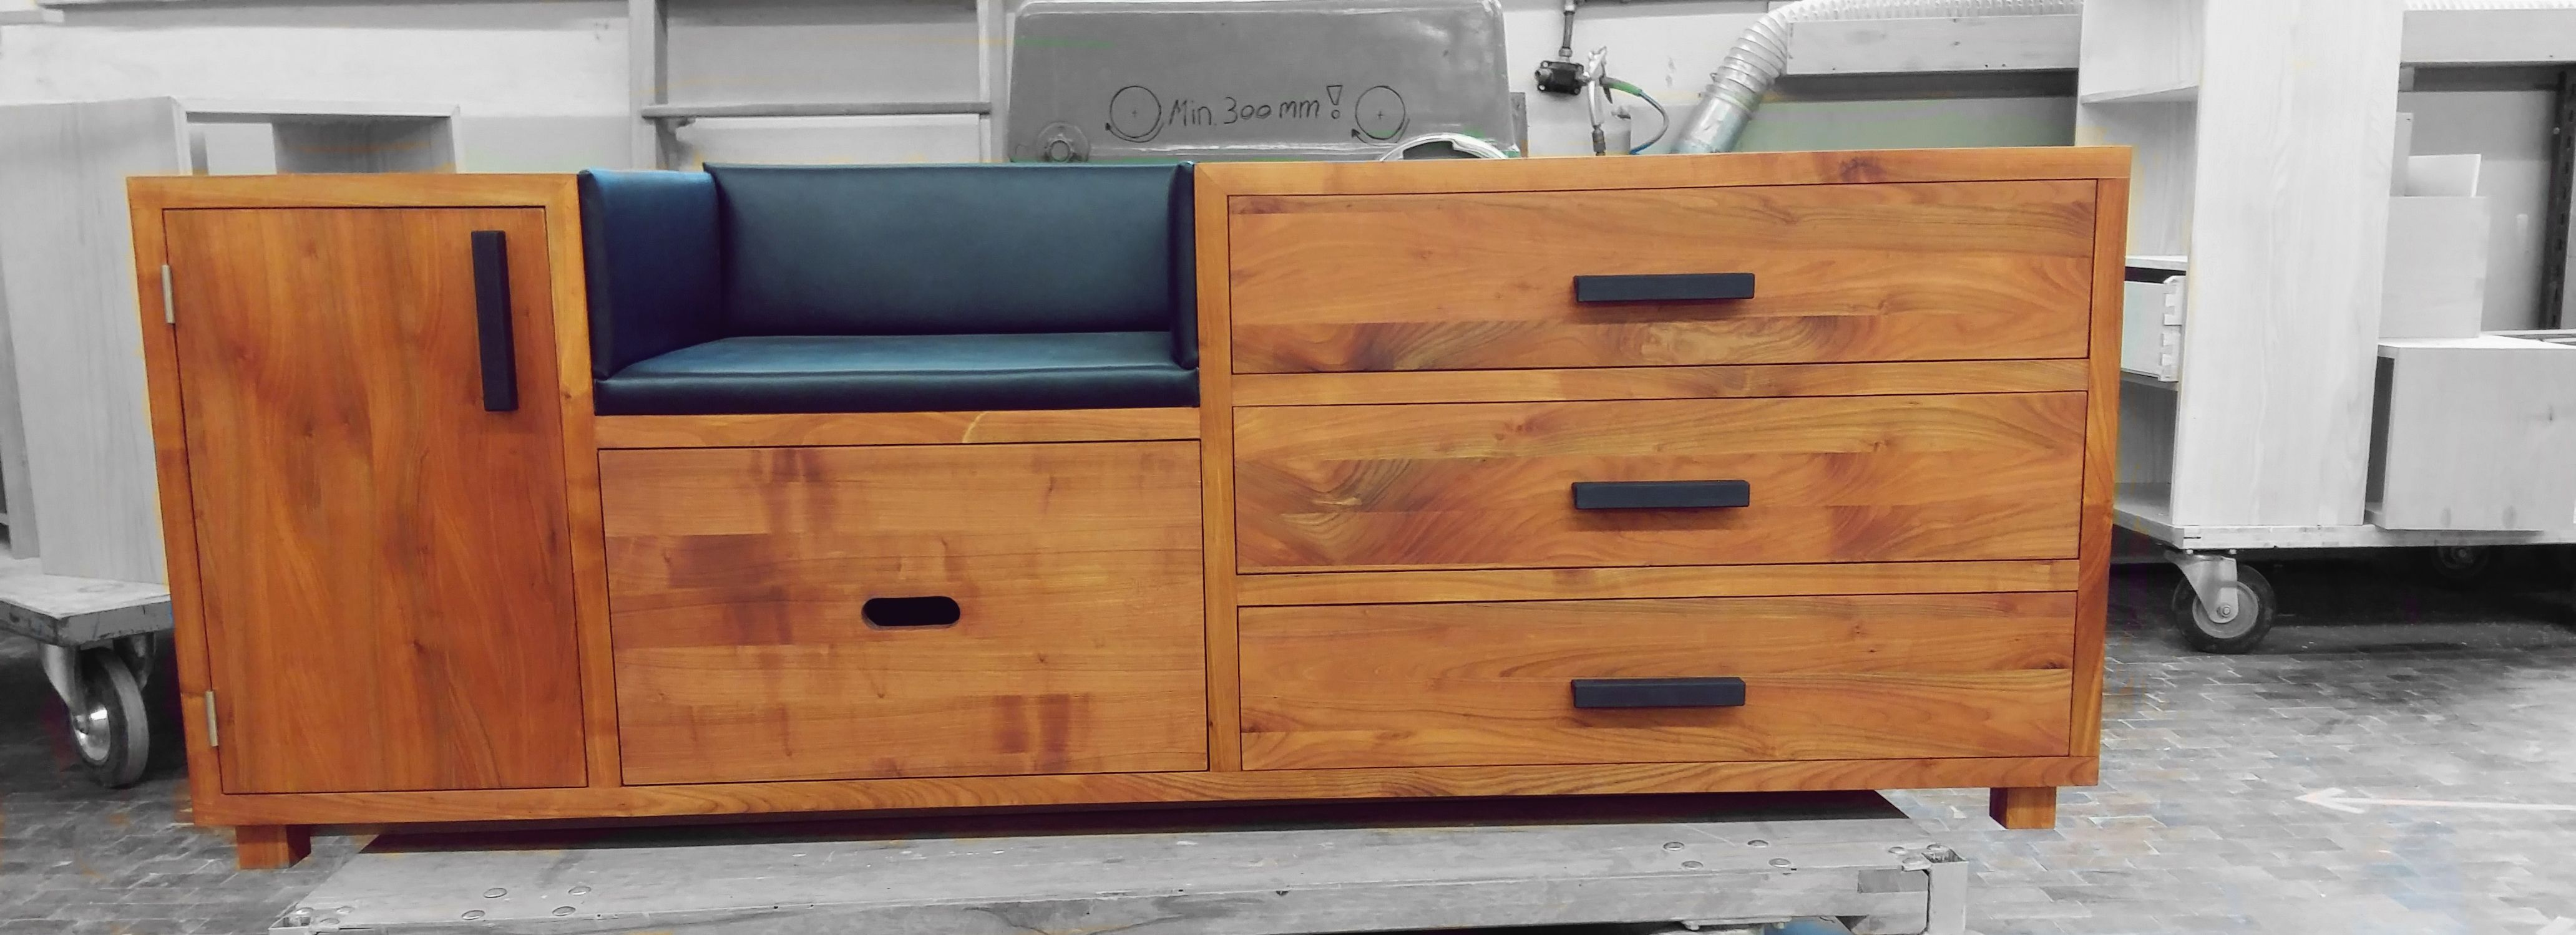 Antique Mahogany Sideboard Buffet By Baker Furniture Co 1stdibs